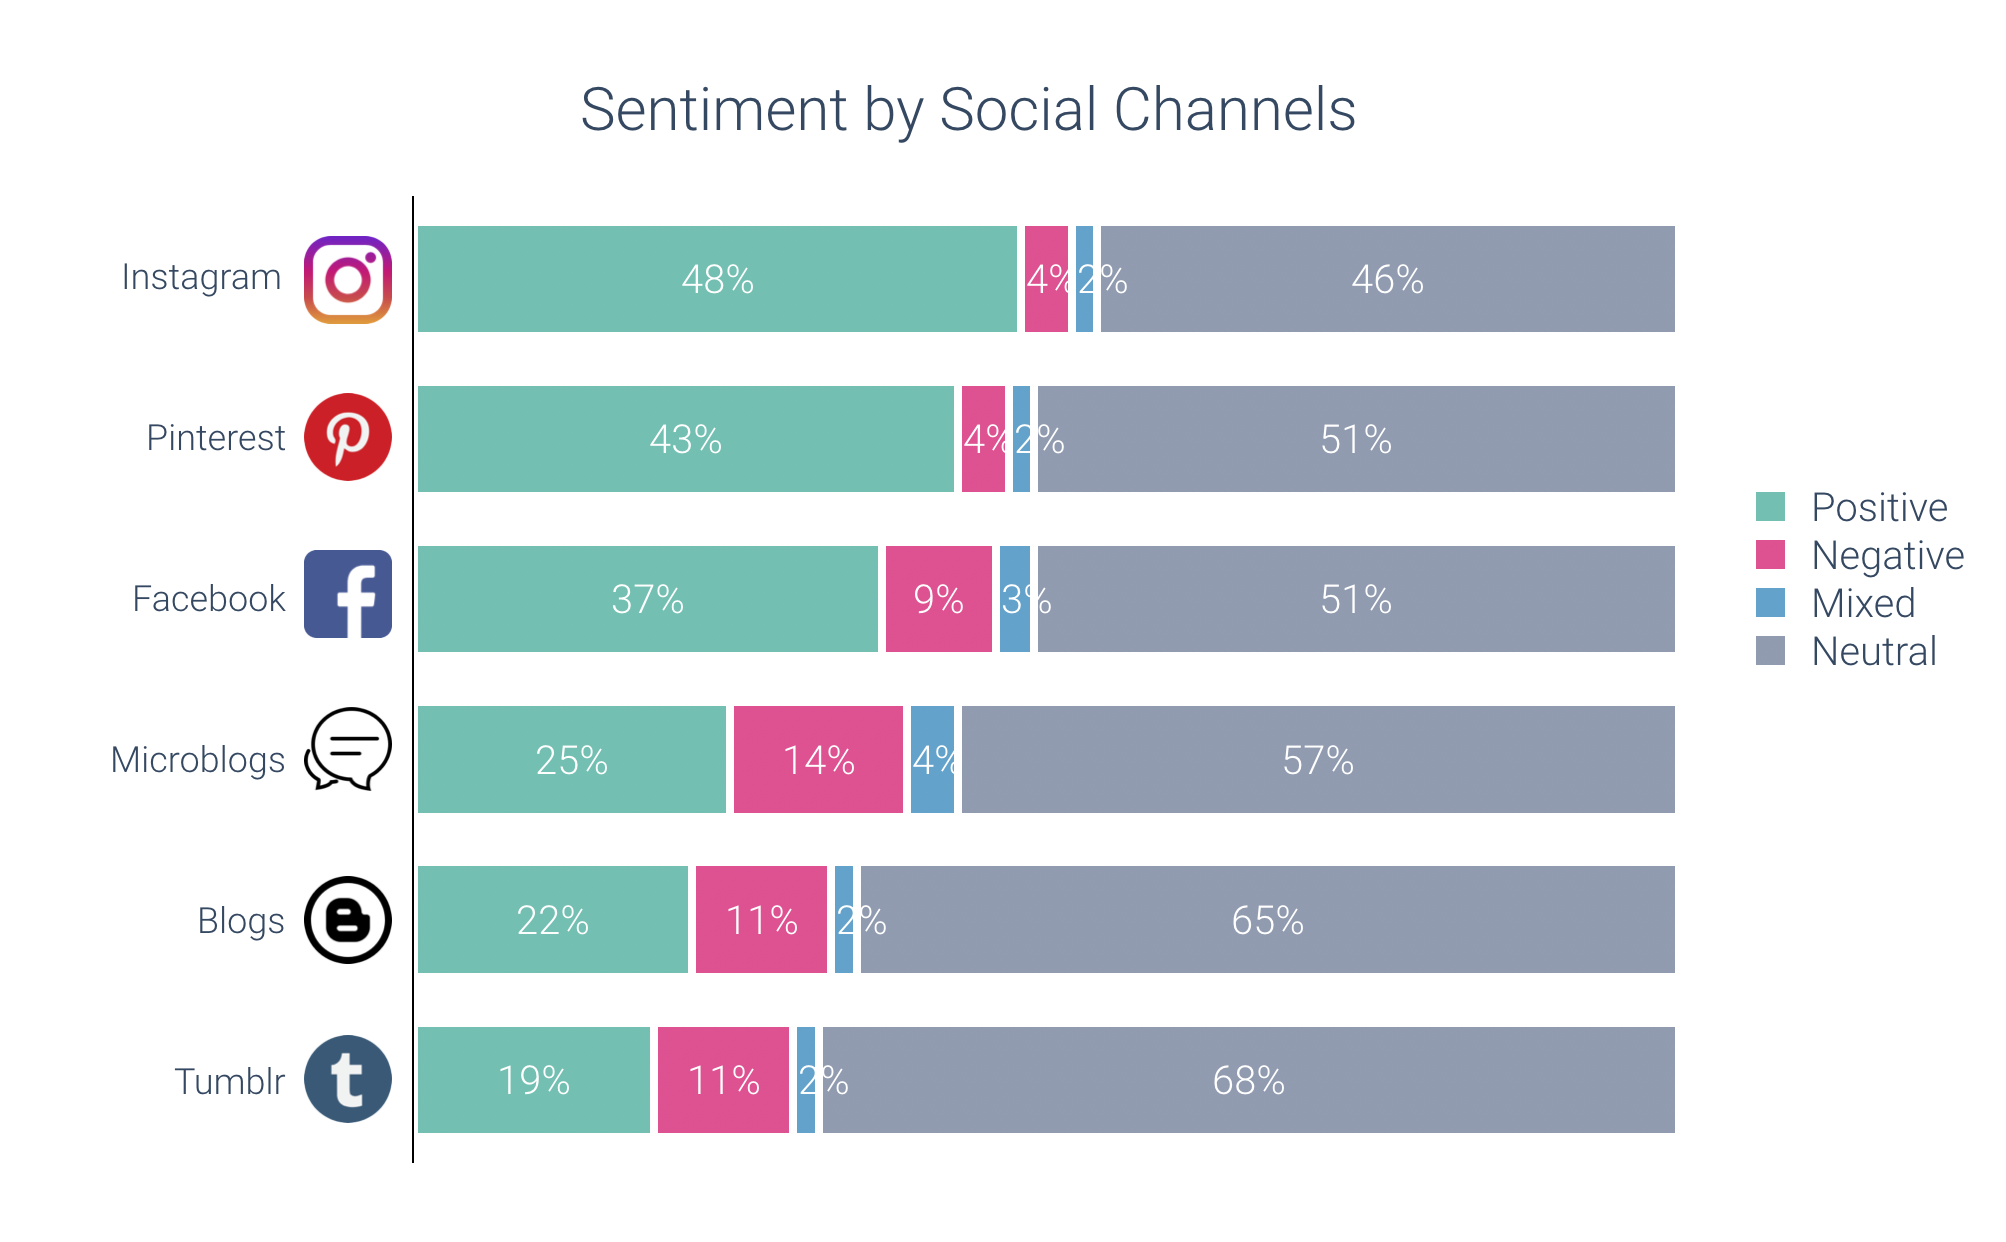 sentiment analysis by social media channel